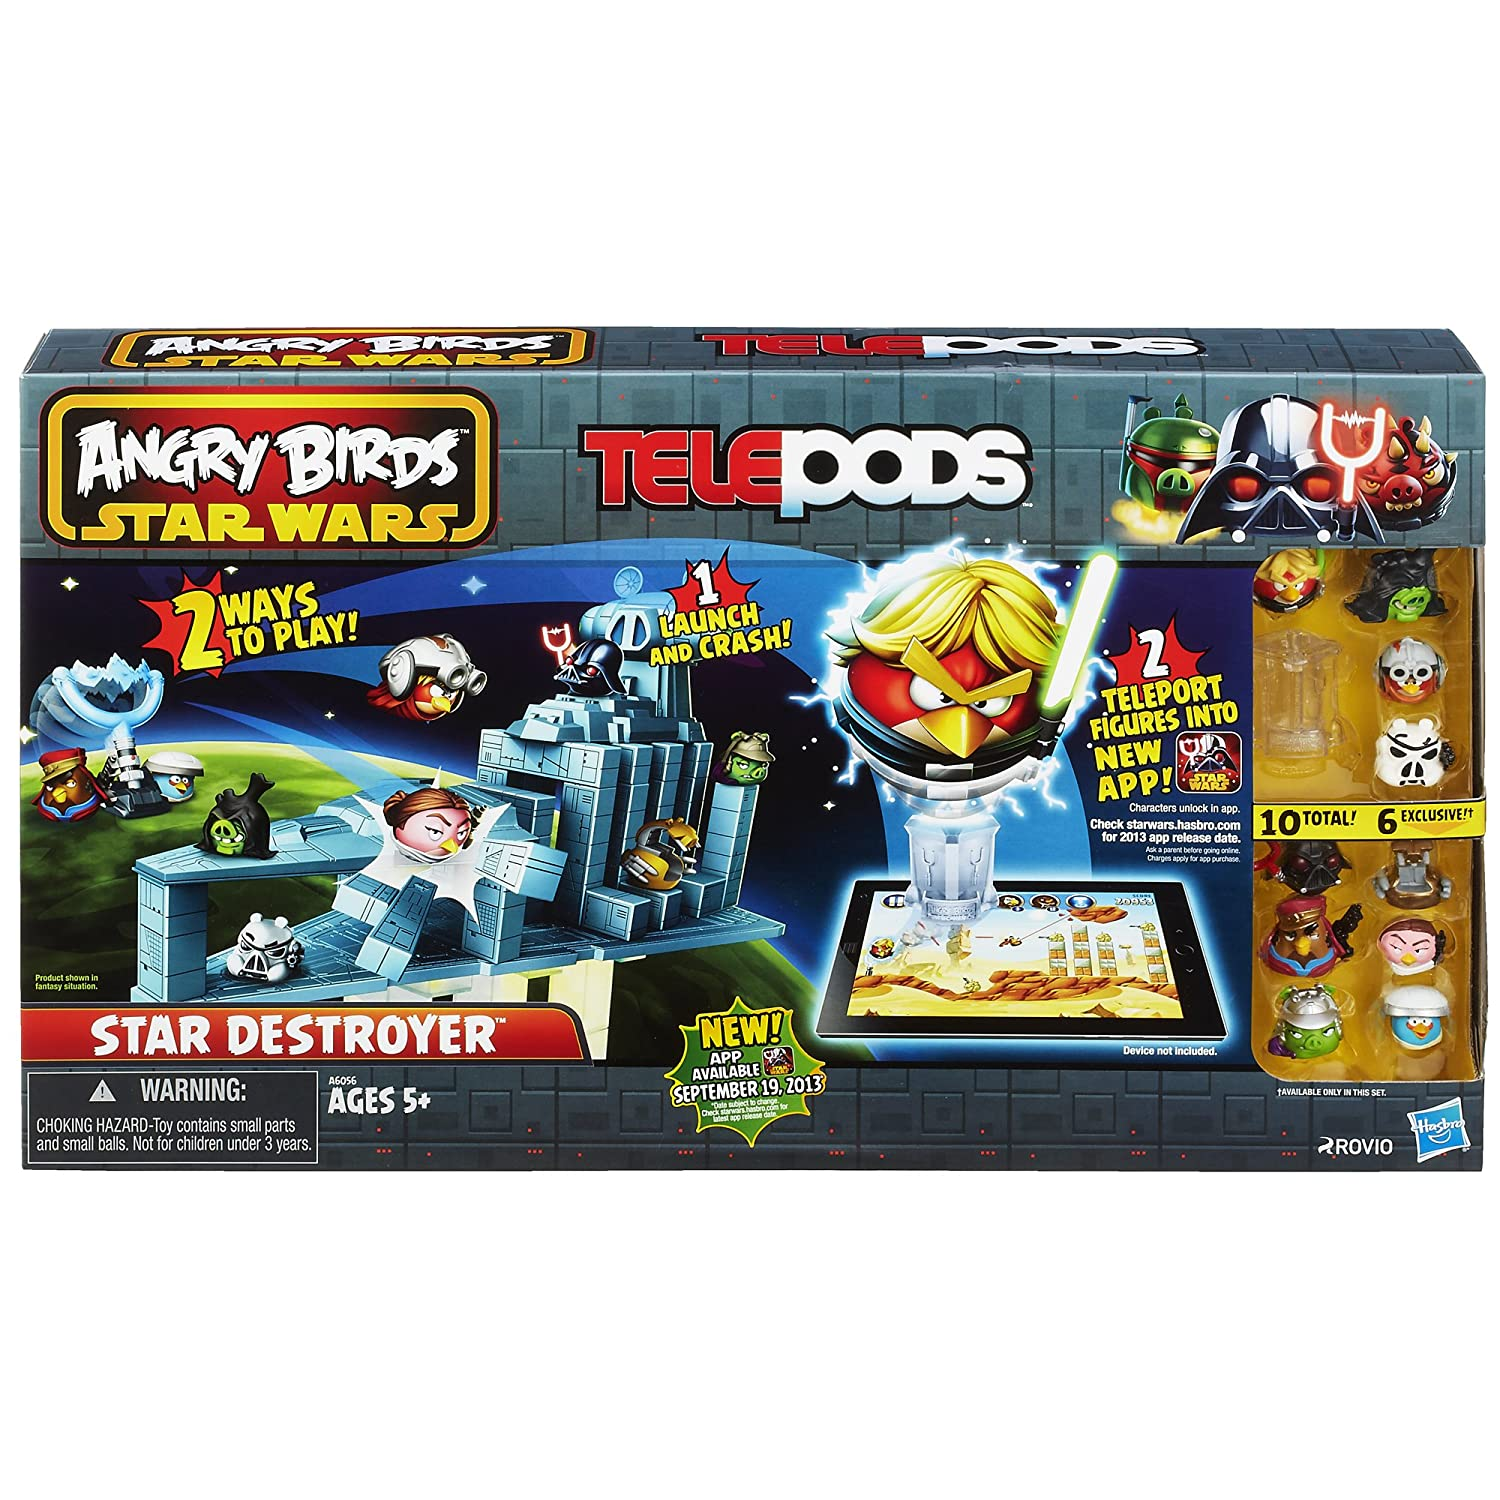 amazon com angry birds star wars telepods star destroyer set